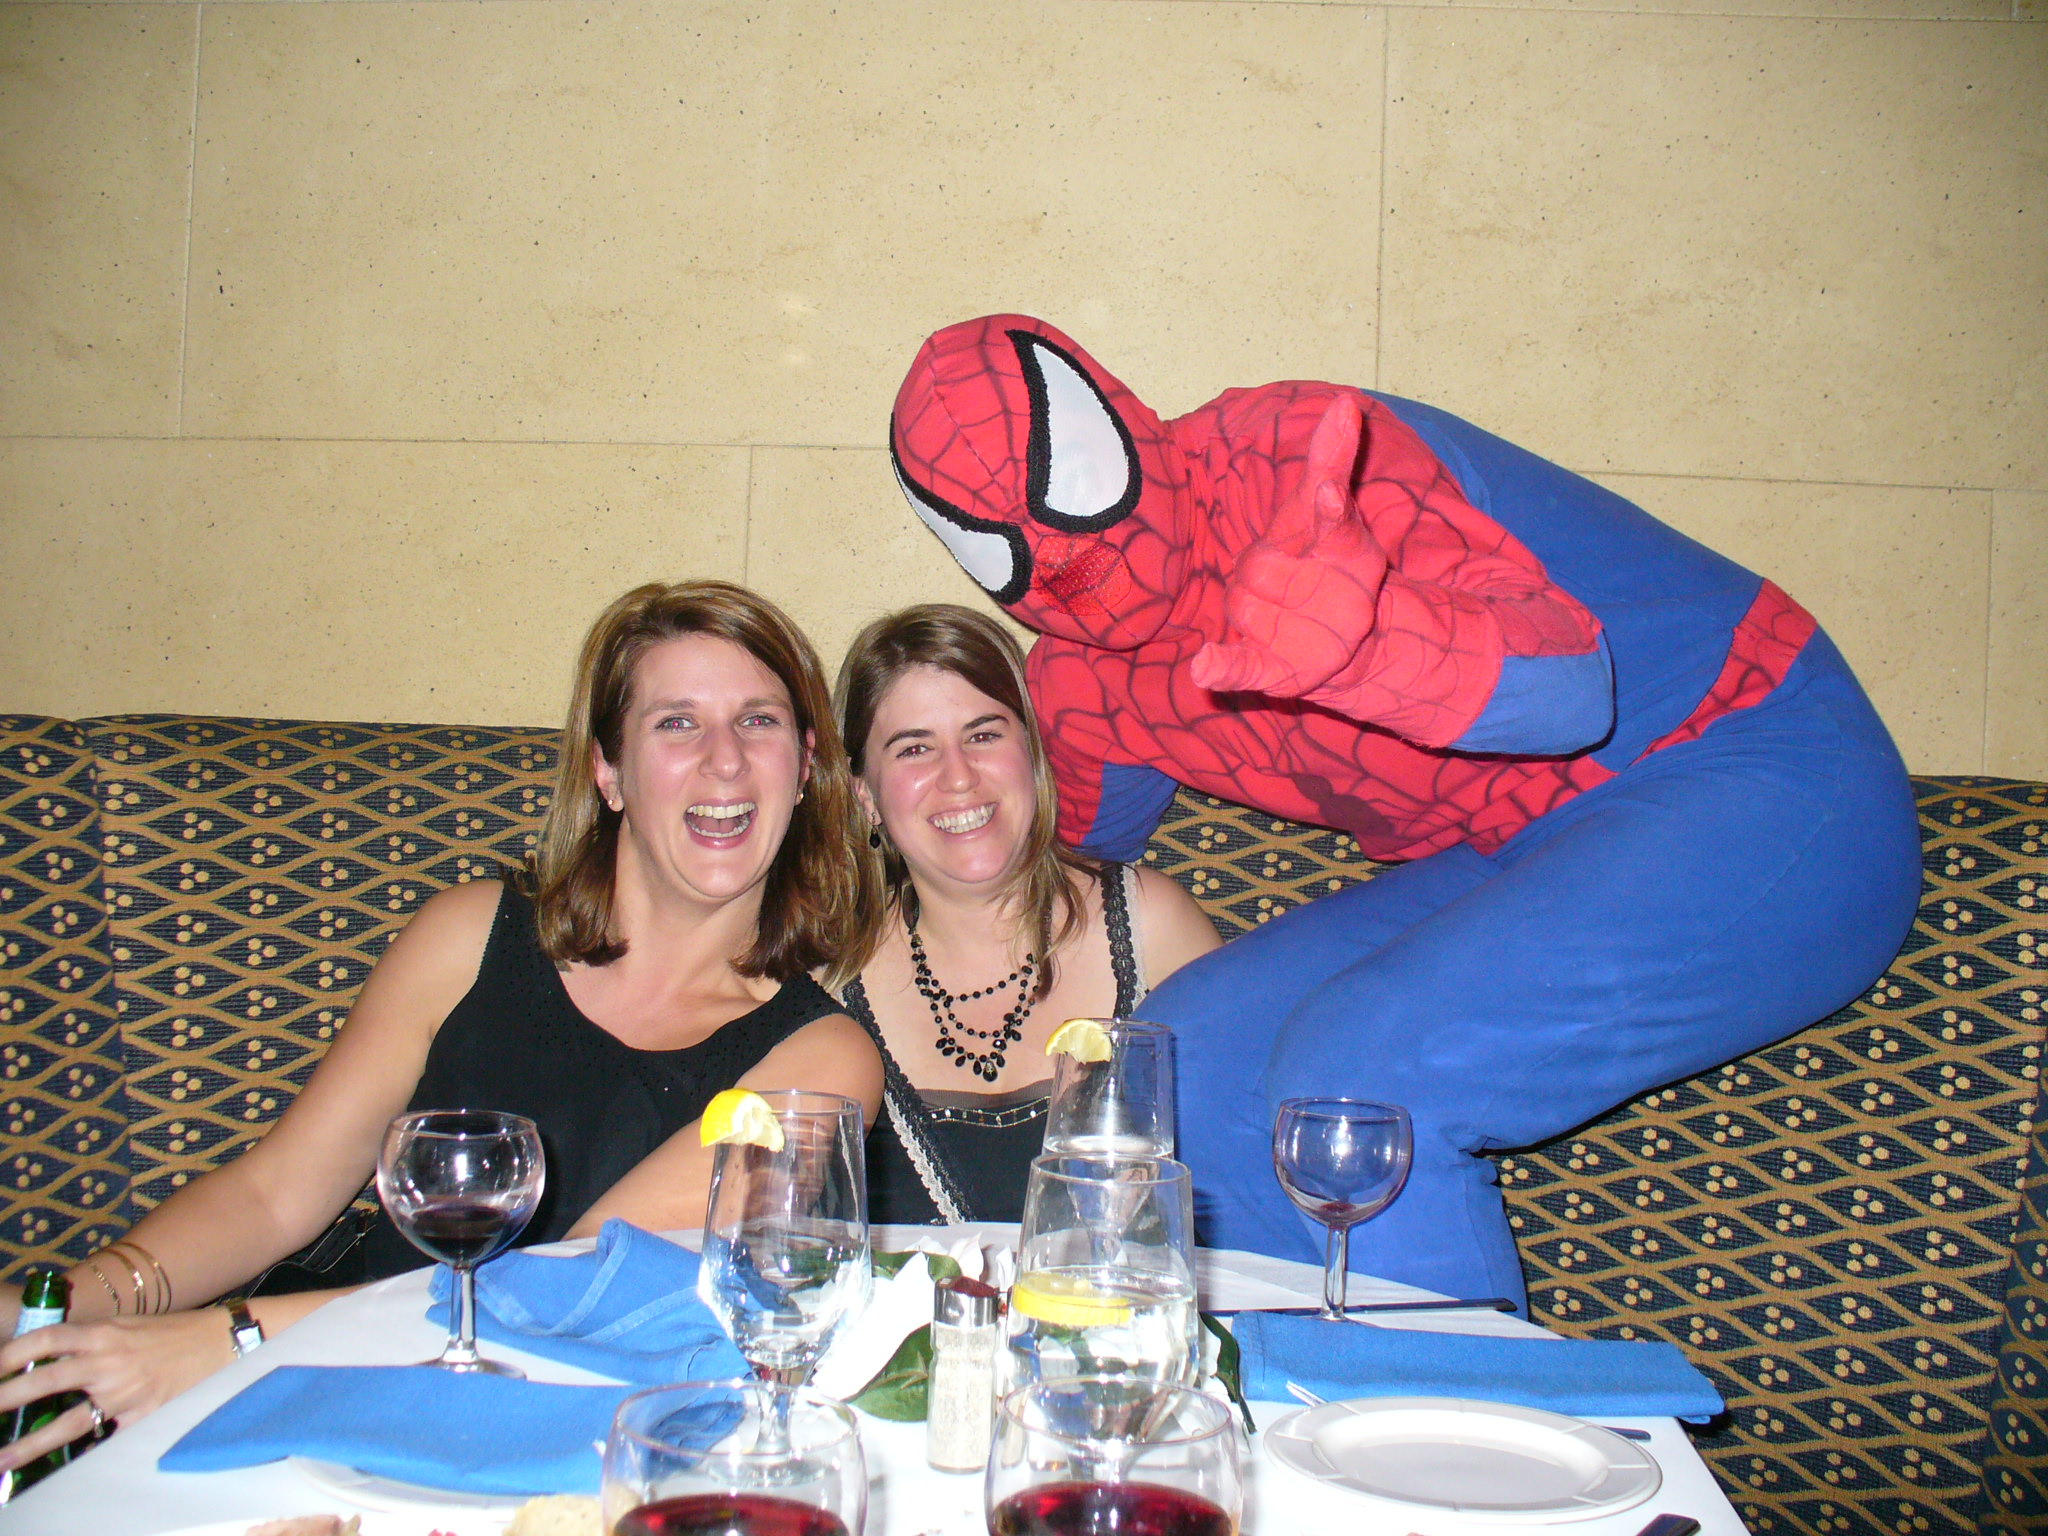 Spiderman et cliente